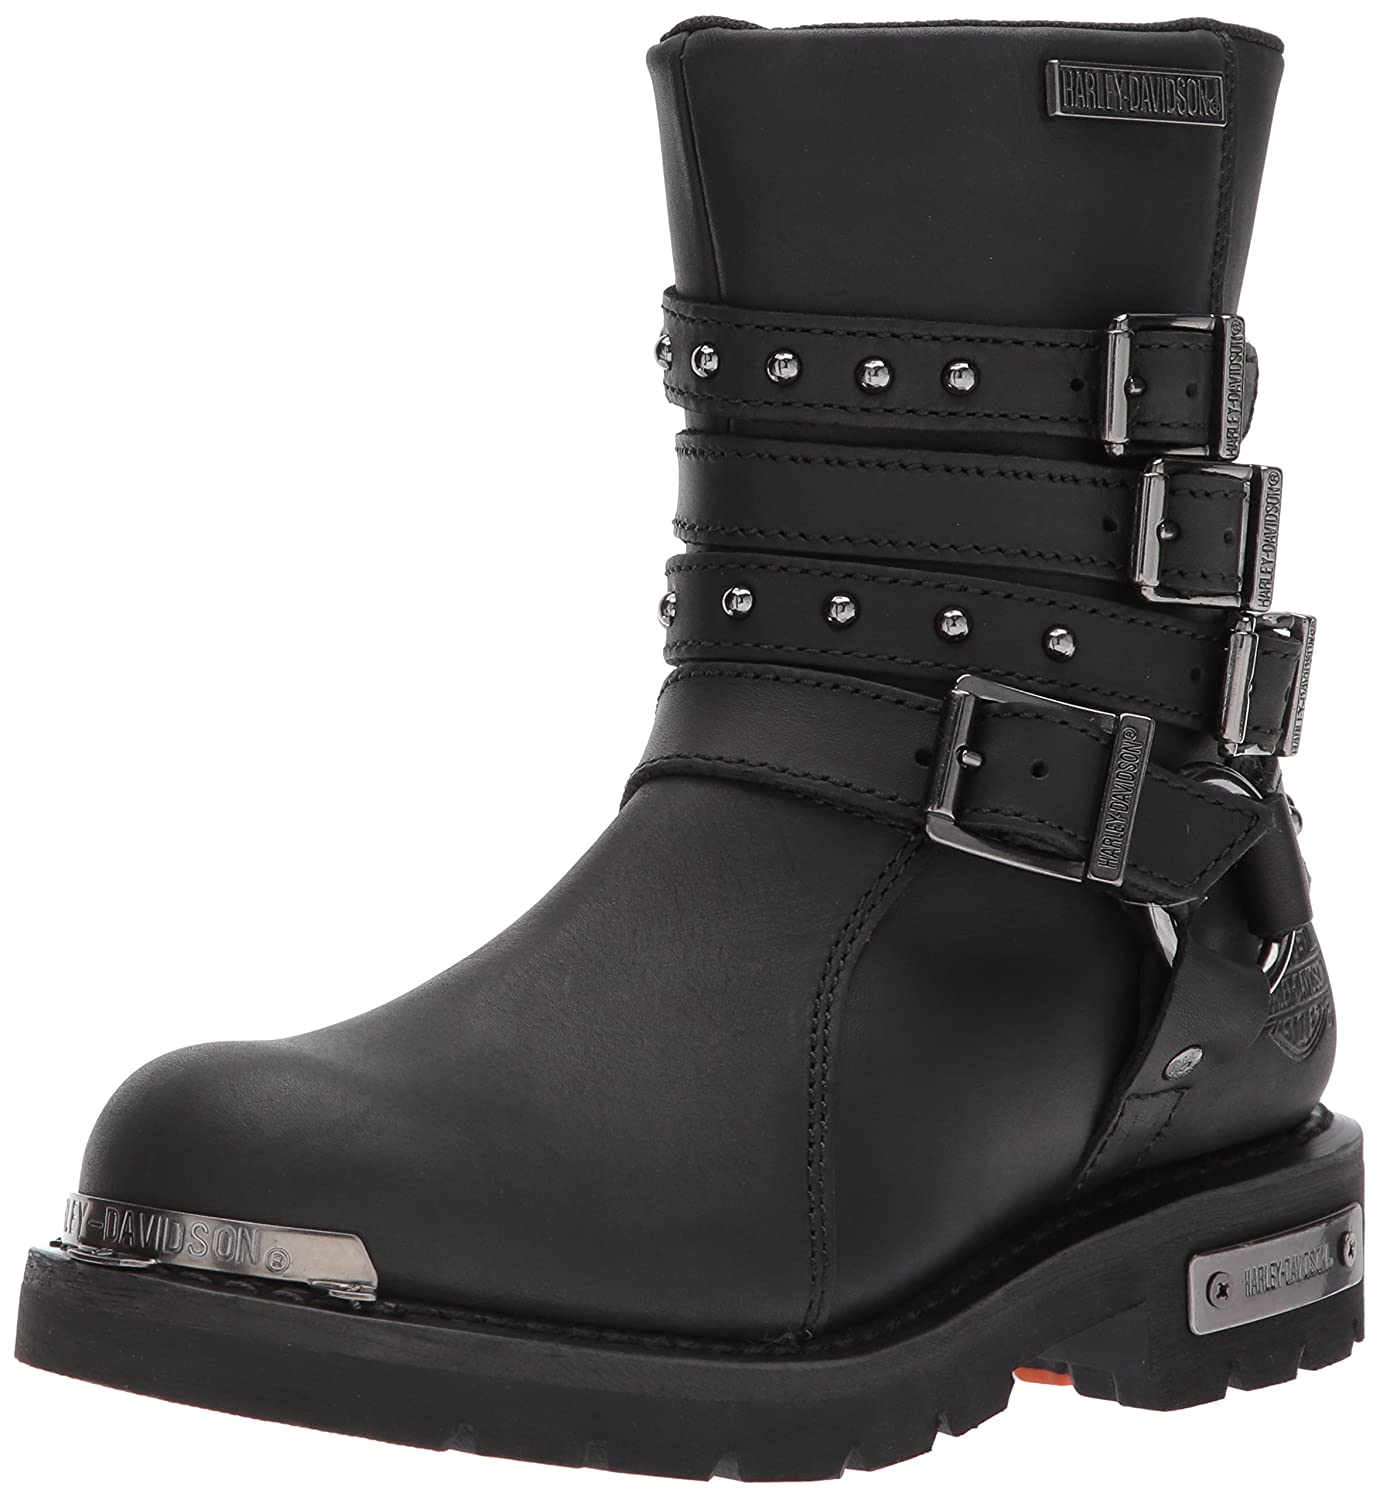 f7058e121cf0 Amazon.com  Harley-Davidson Women s Eddington 7-Inch Black Motorcycle Boots  D84013  Harley-Davidson  Shoes